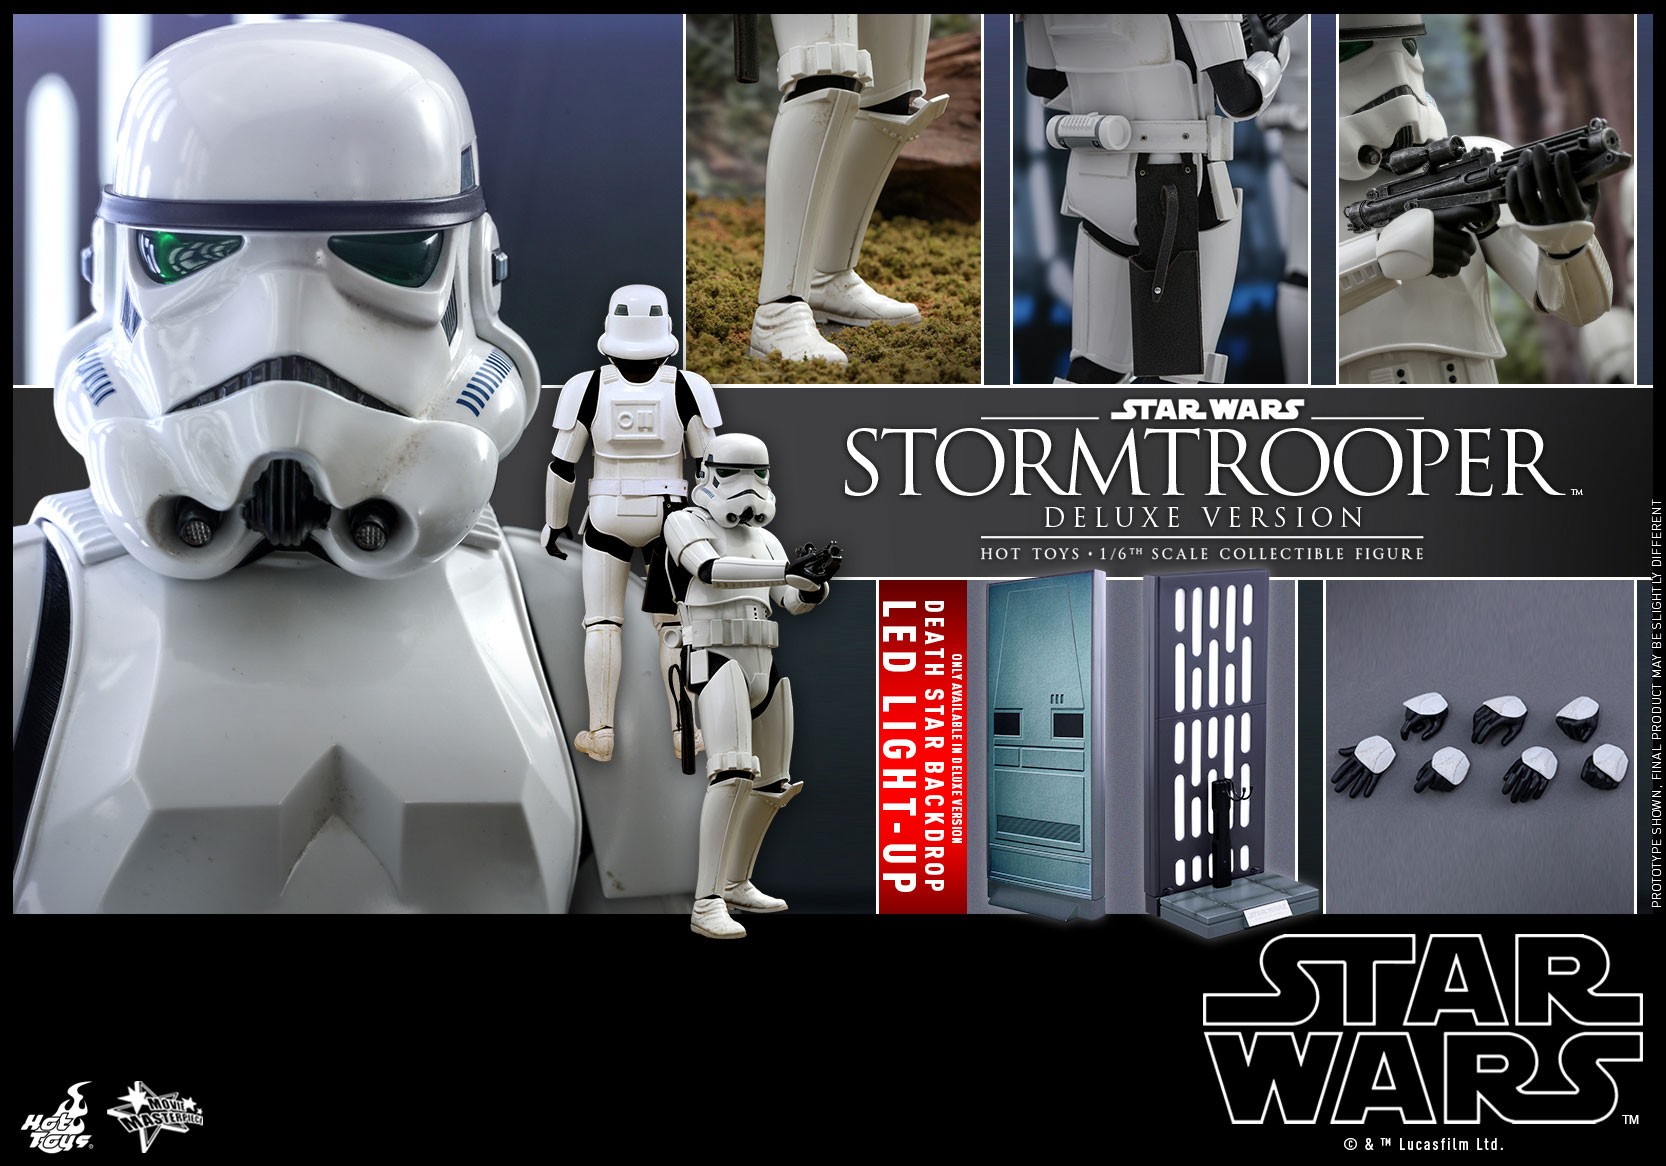 Hot-Toys---Star-Wars---Stormtrooper-Collectible-Figure-(Deluxe-Version)_PR20